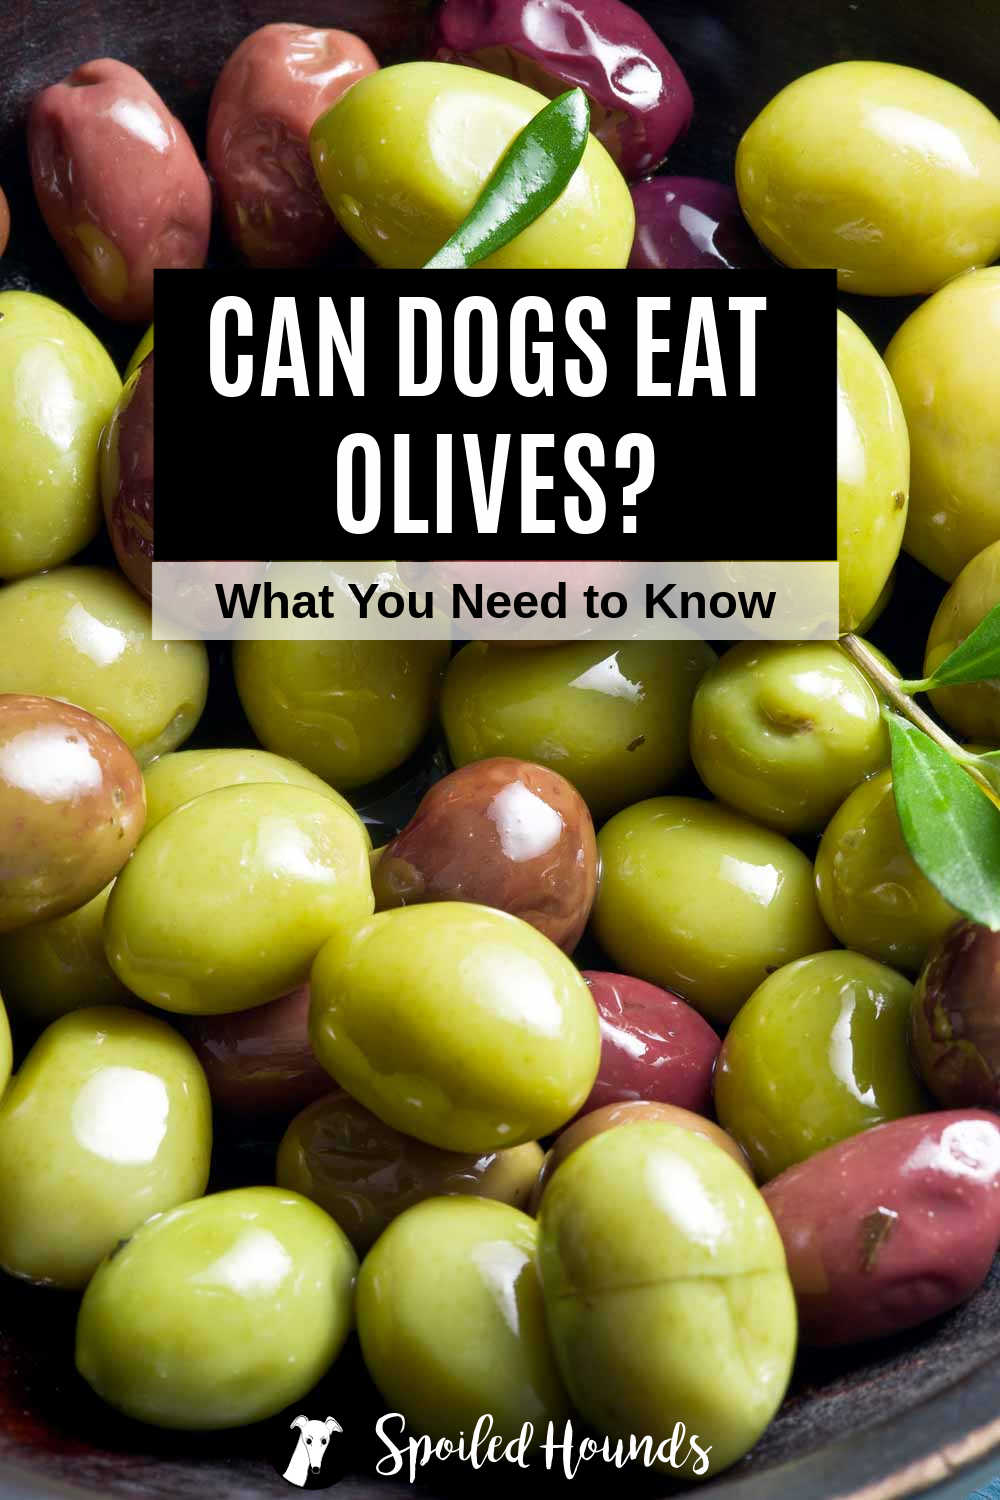 a bunch of olives in a bowl